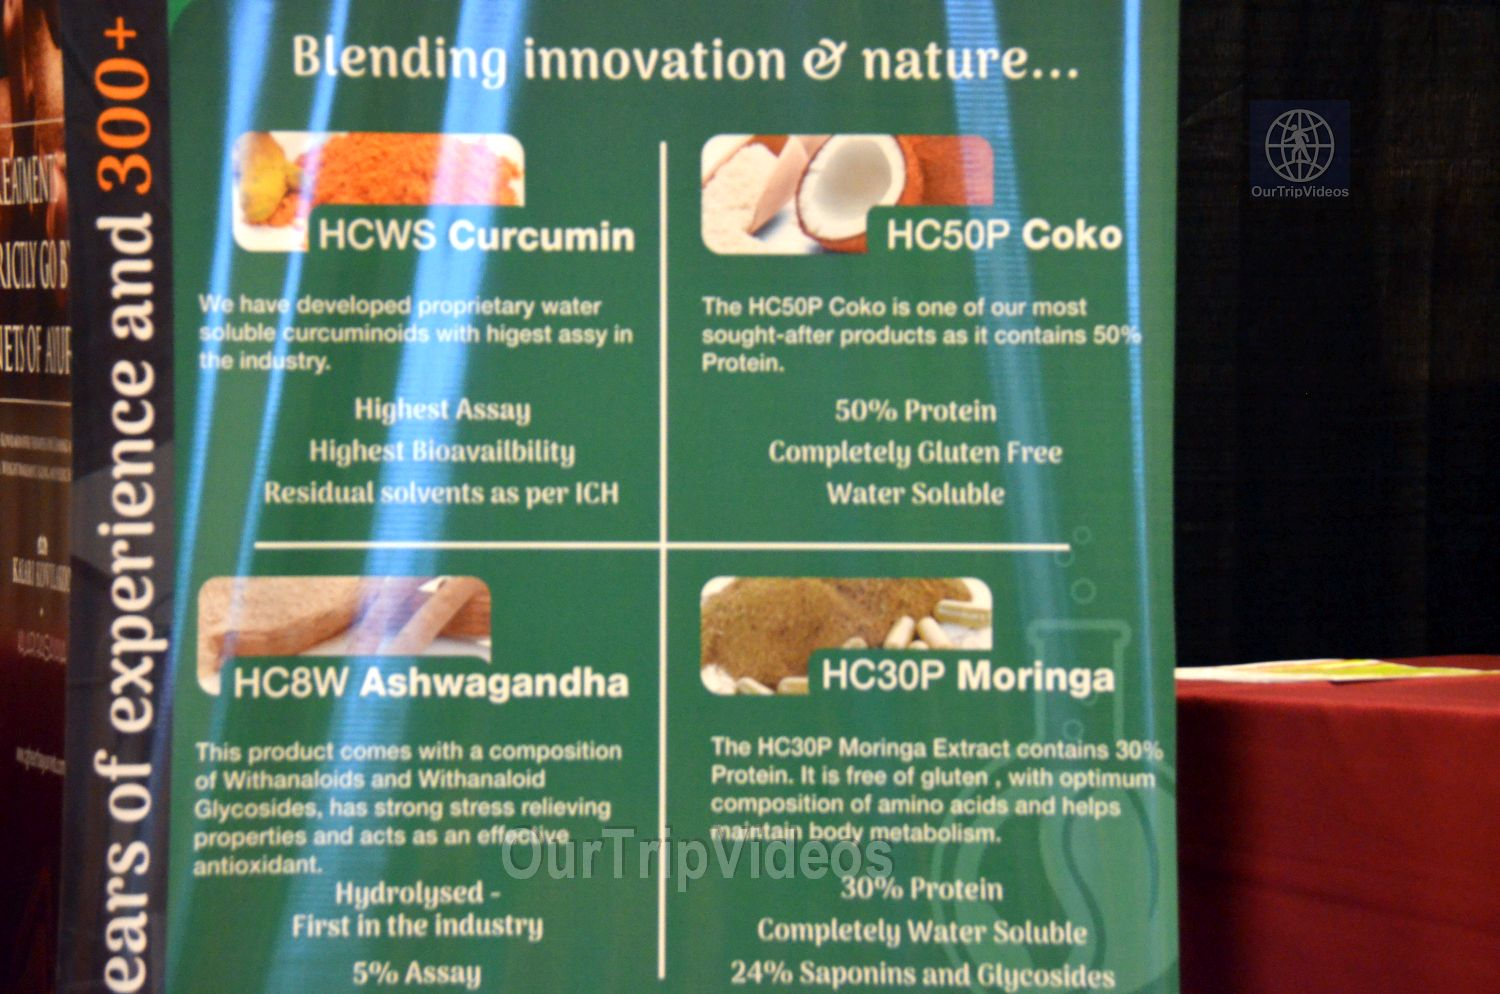 Indo-American Wellness Conclave and Exhibition, Santa Clara, CA, USA - Picture 13 of 25